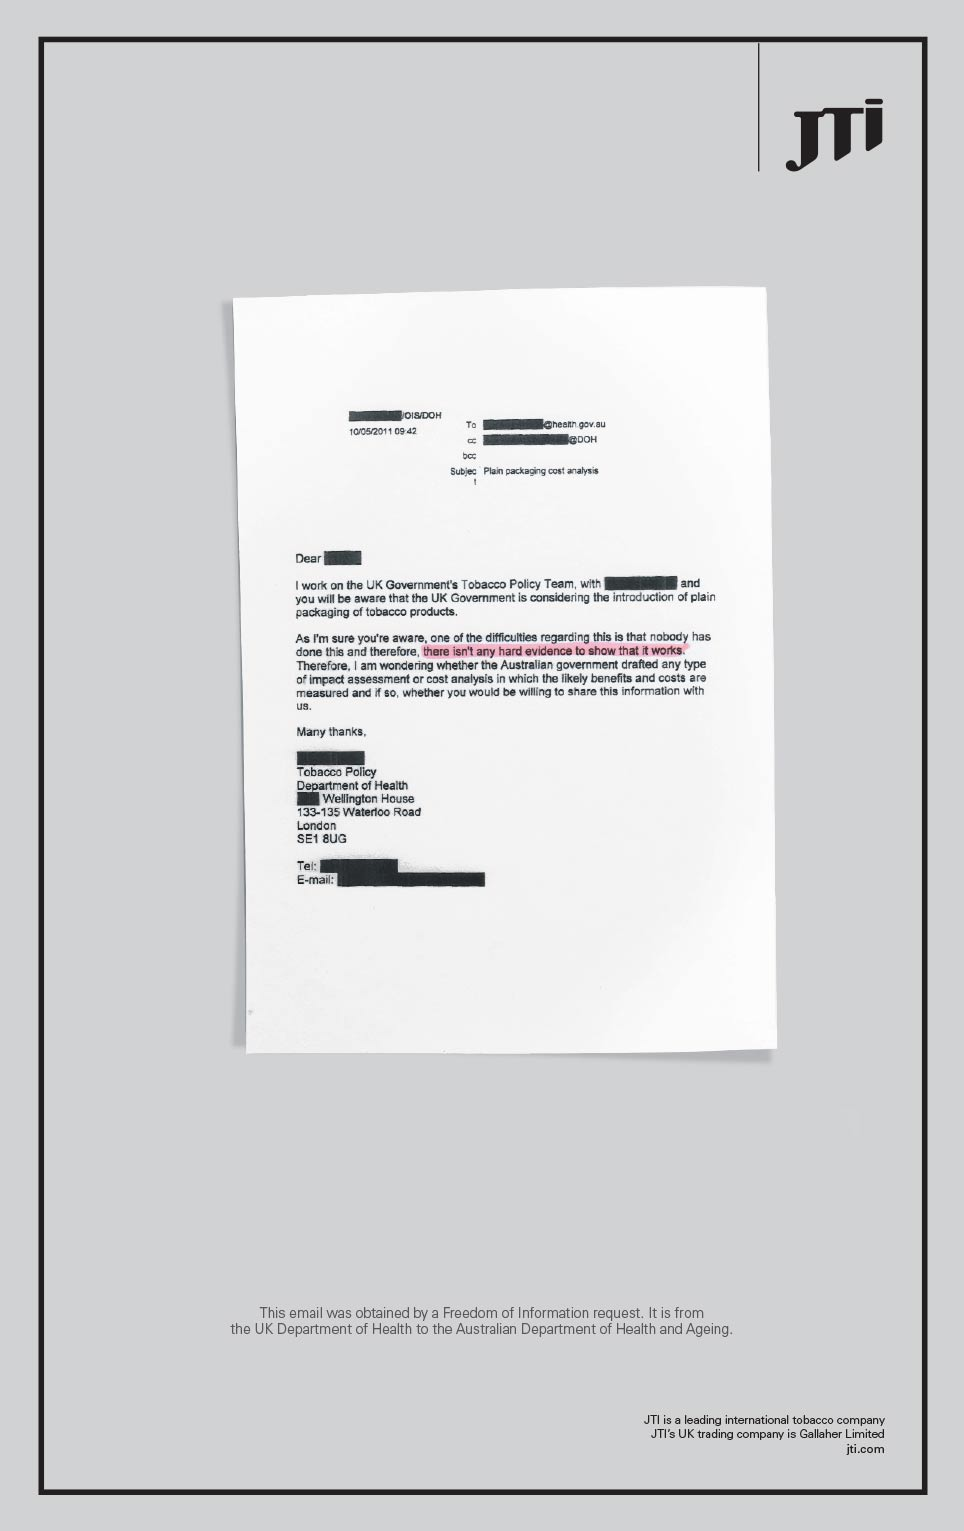 This advert from tobacco manufacturer JTI appeared in national newspapers last week in a campaign against government plans to introduce plain packaging. The redacted email shows the coalition has no evidence that the measure reduces youth smoking